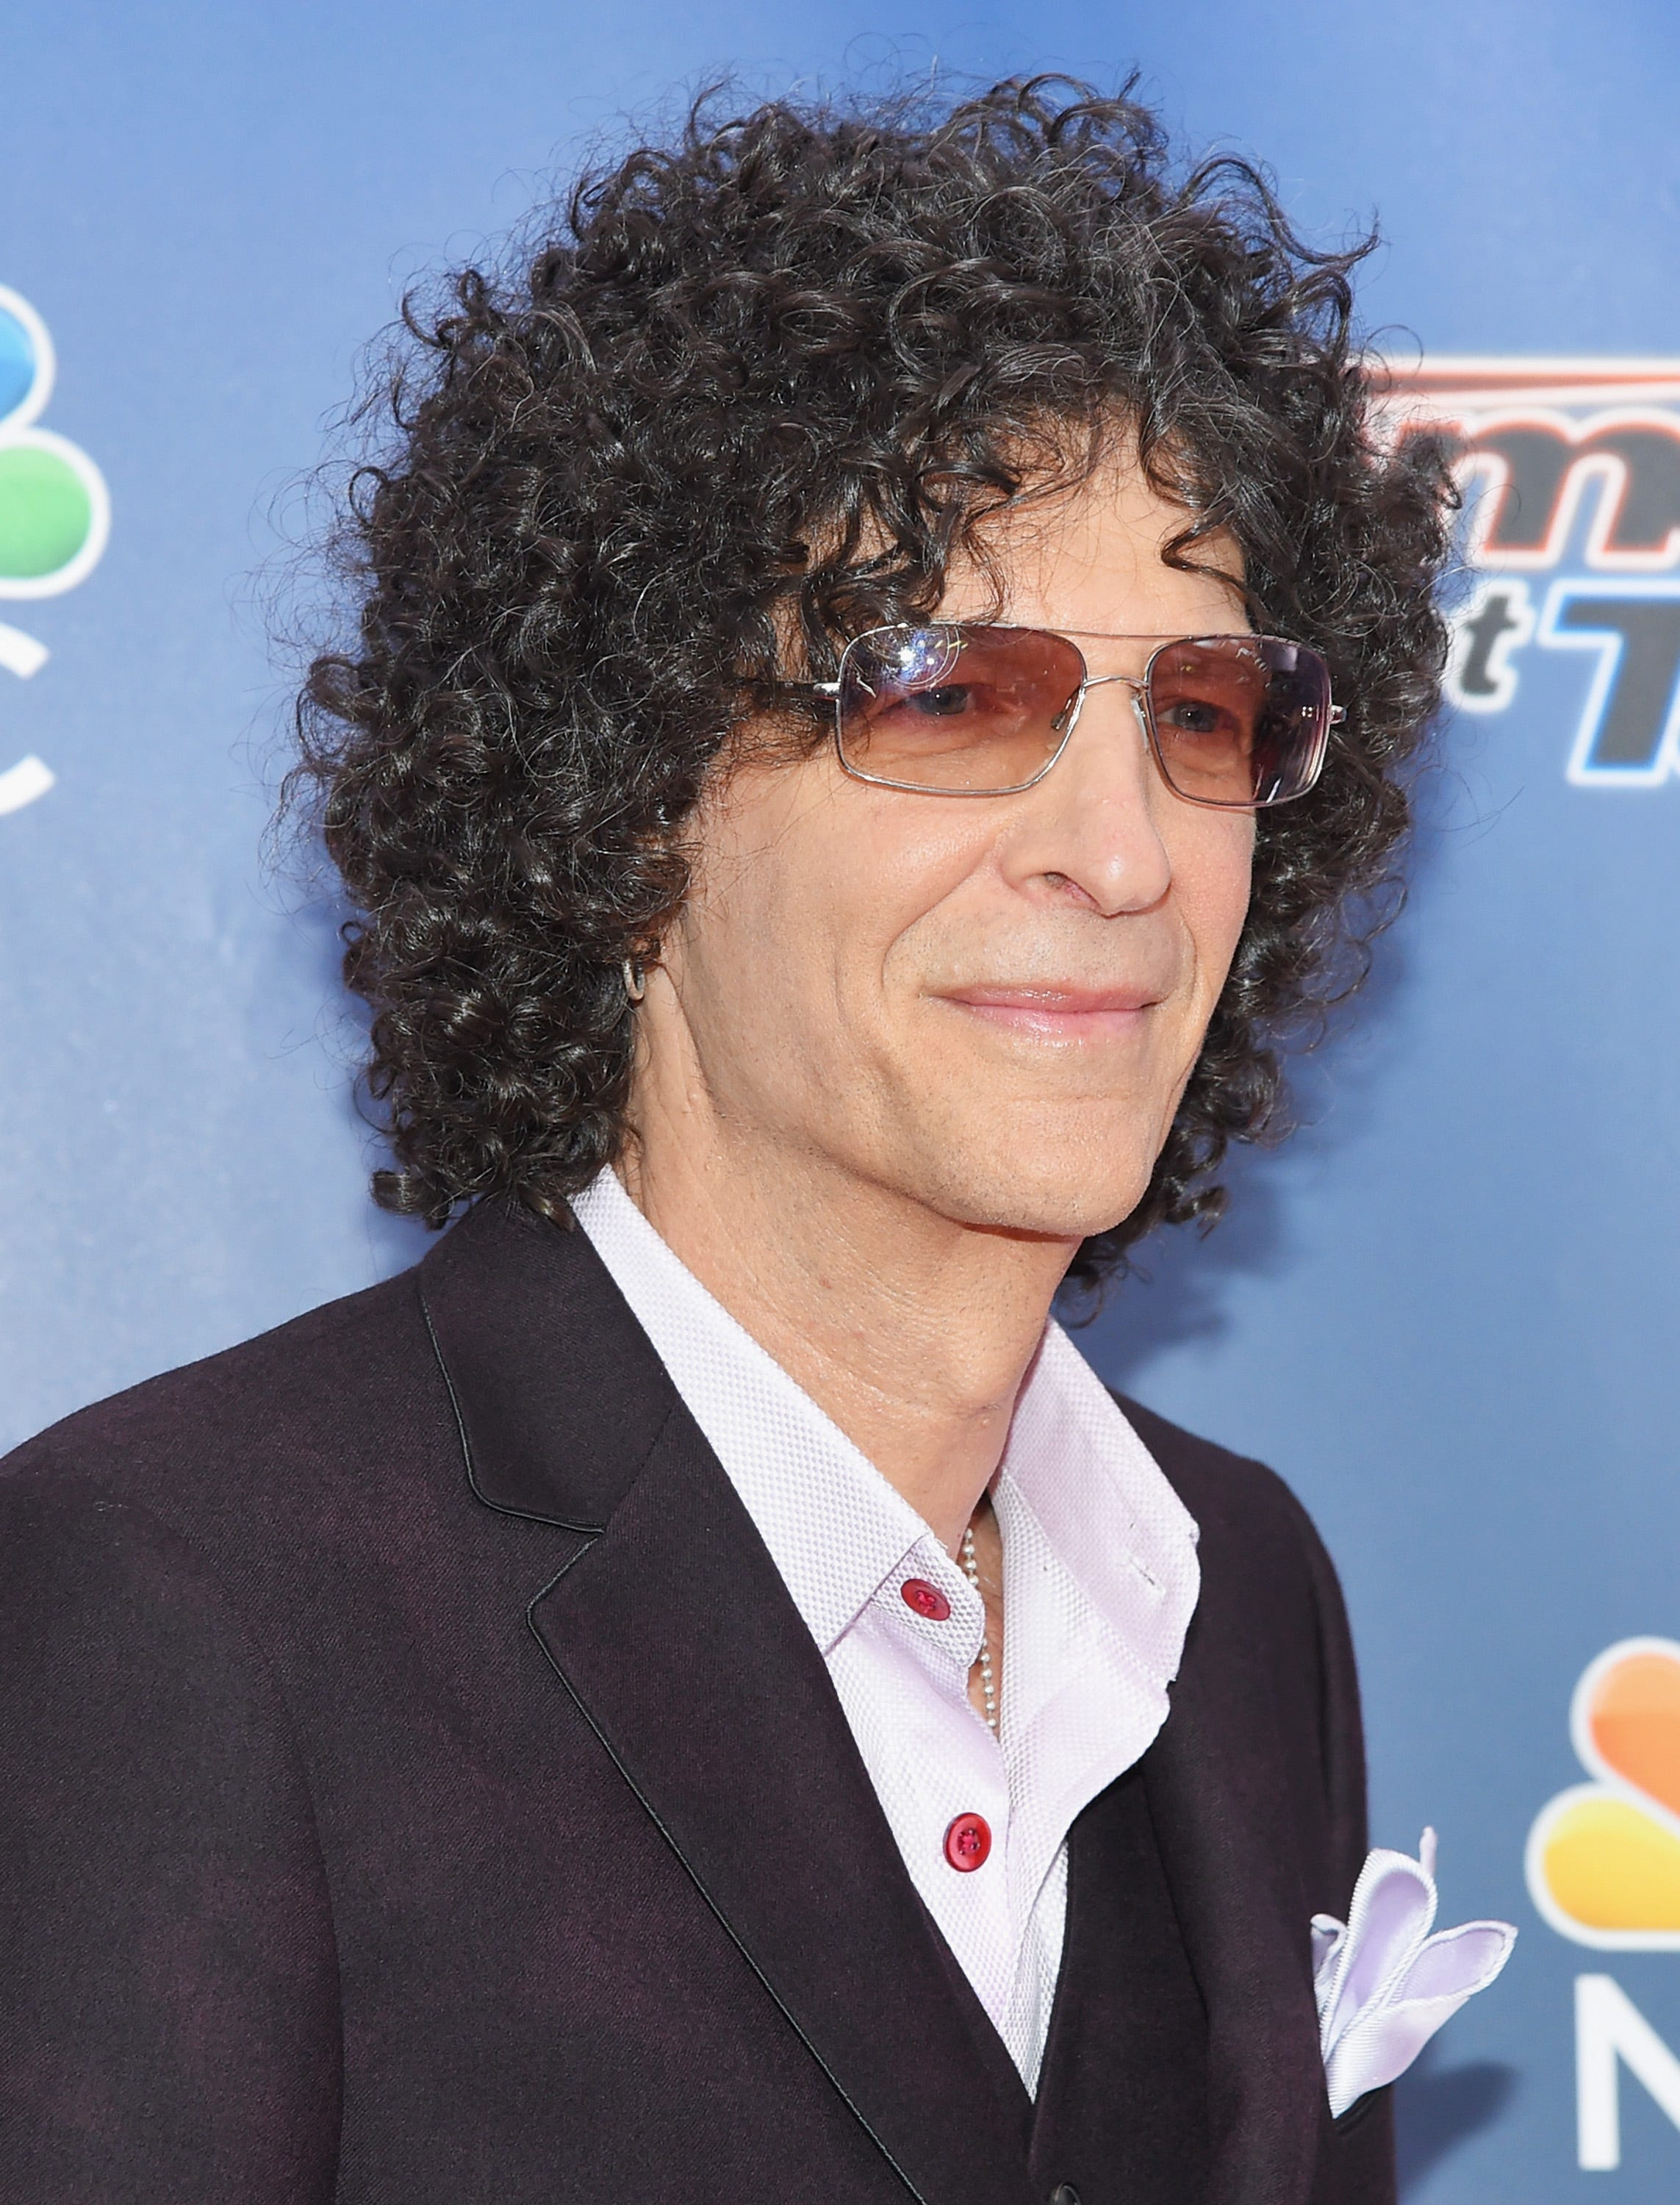 Howard Stern on apologizing to Robin Williams, turning down Trump, grilling Weinstein